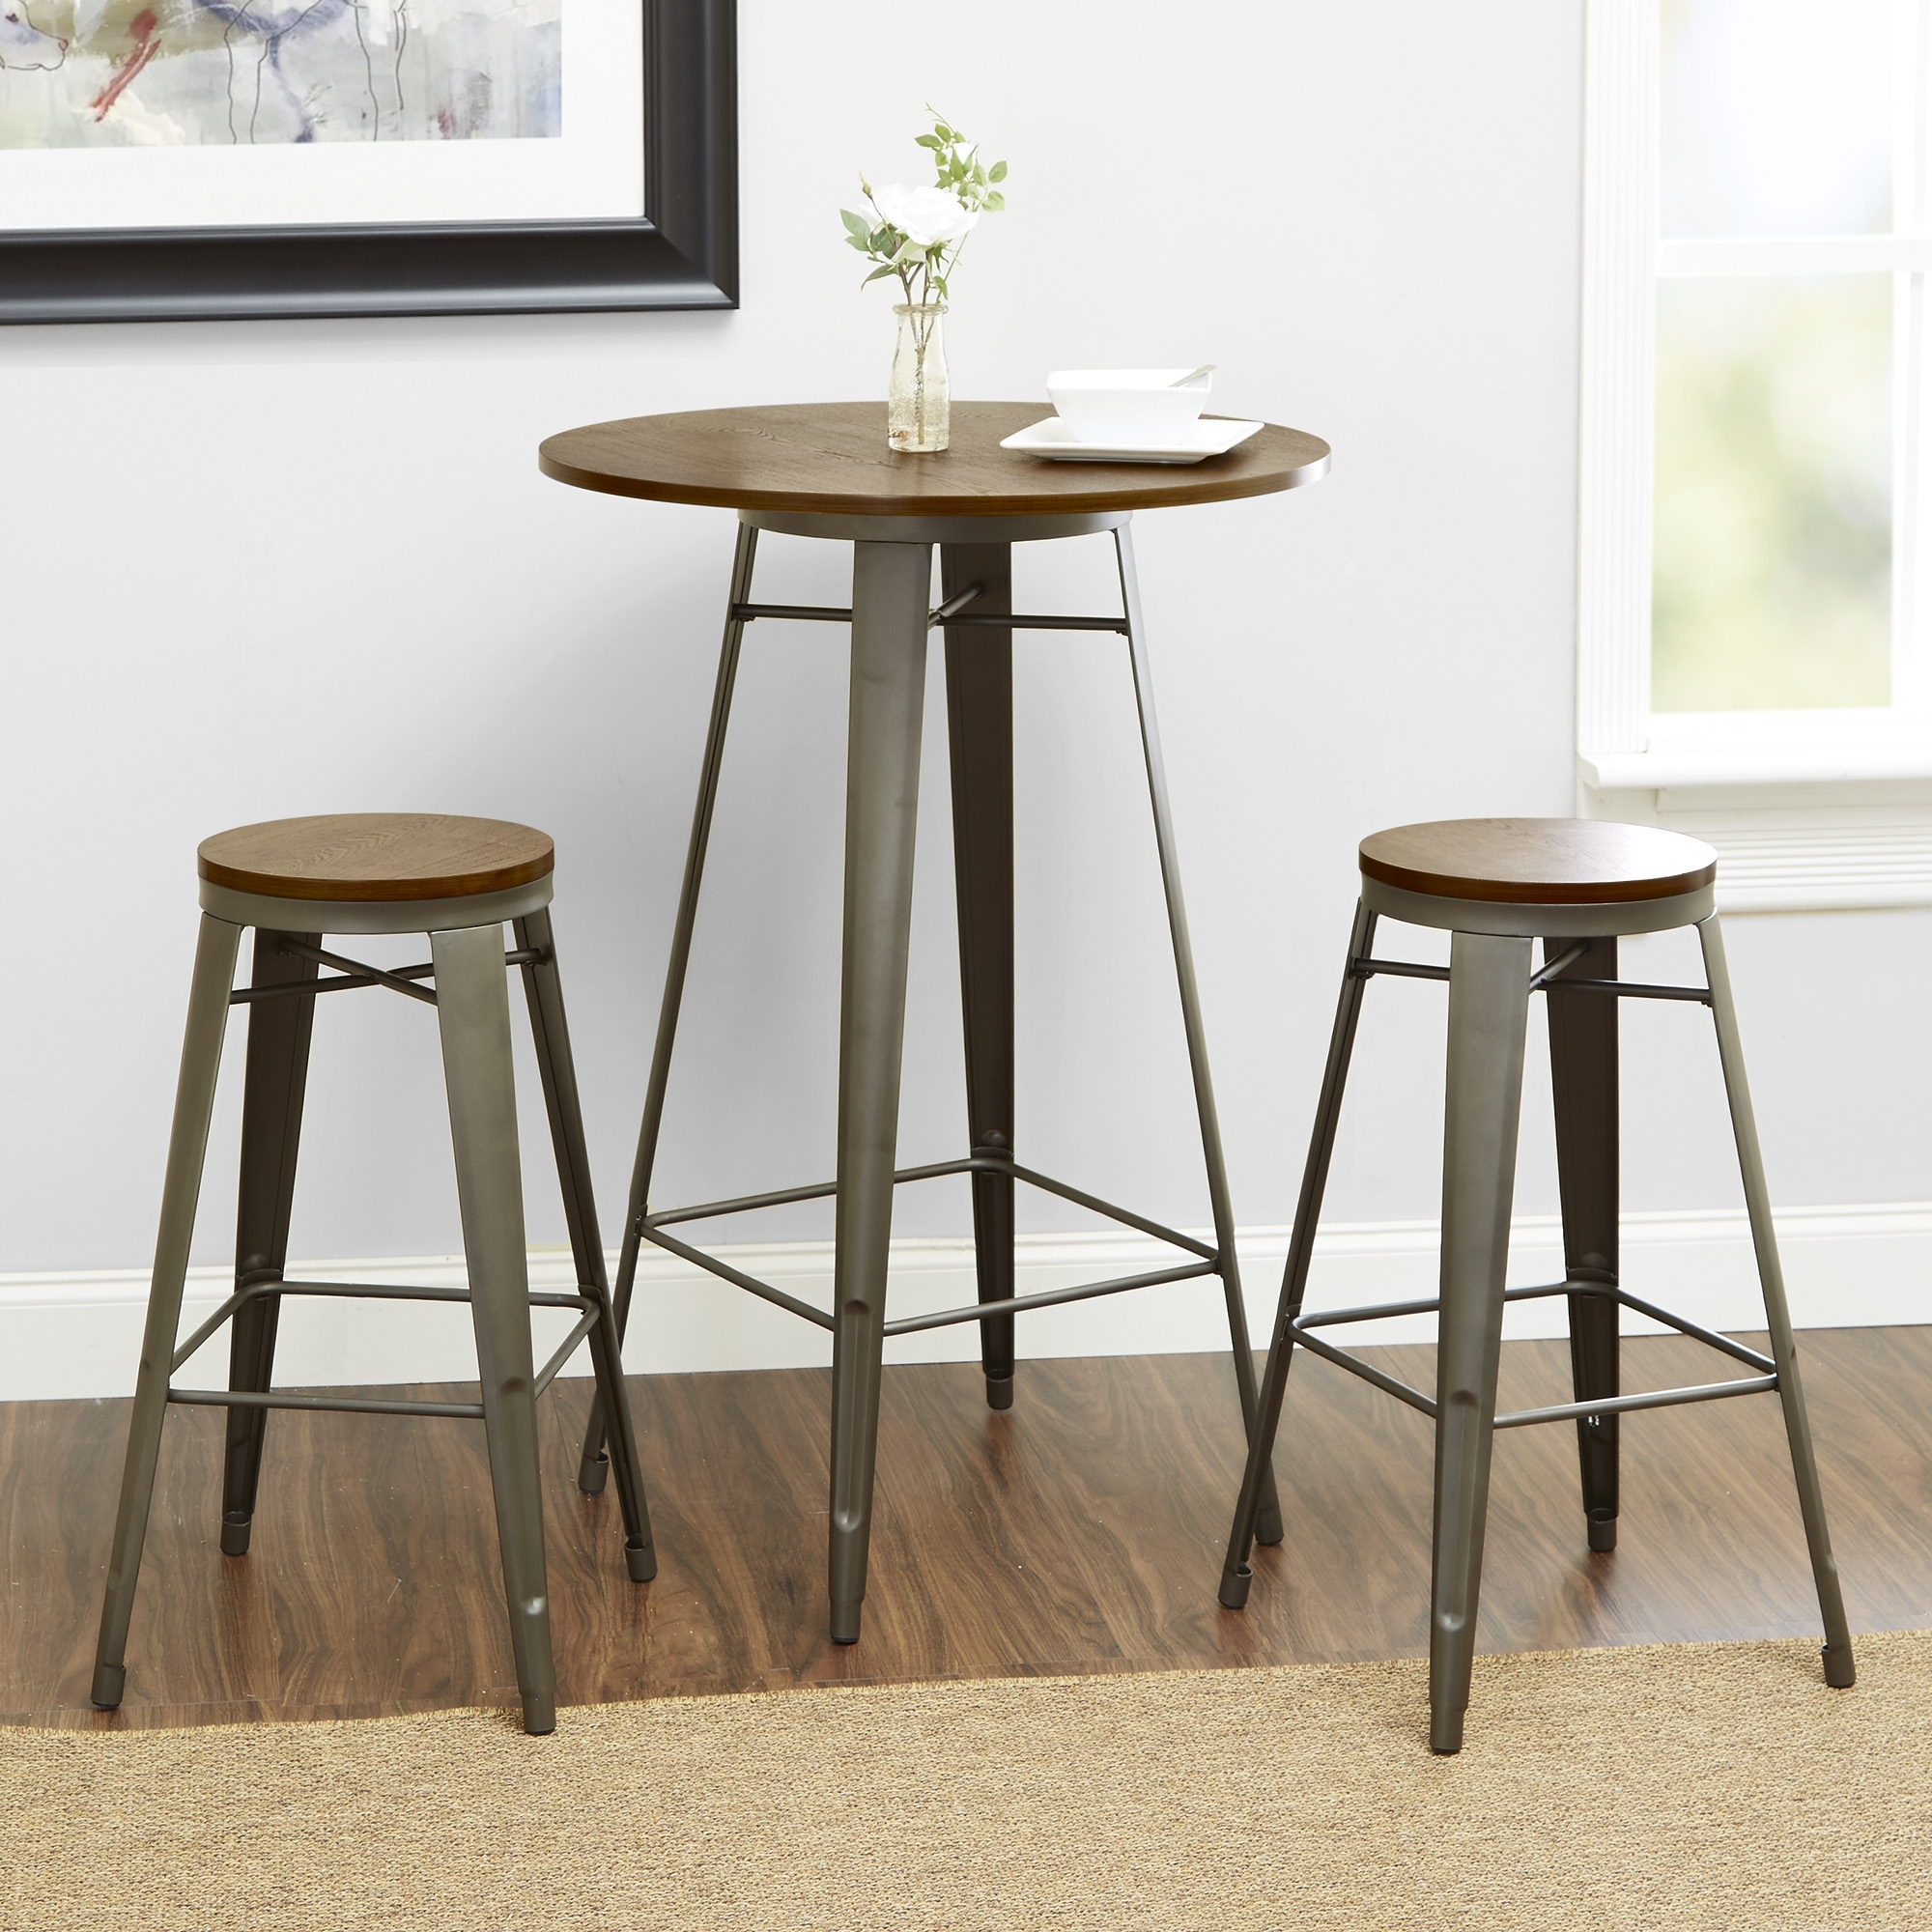 Better Homes And Gardens Harper 3 Piece Pub Set, Multiple Colors In 2018 Harper 5 Piece Counter Sets (Image 3 of 20)